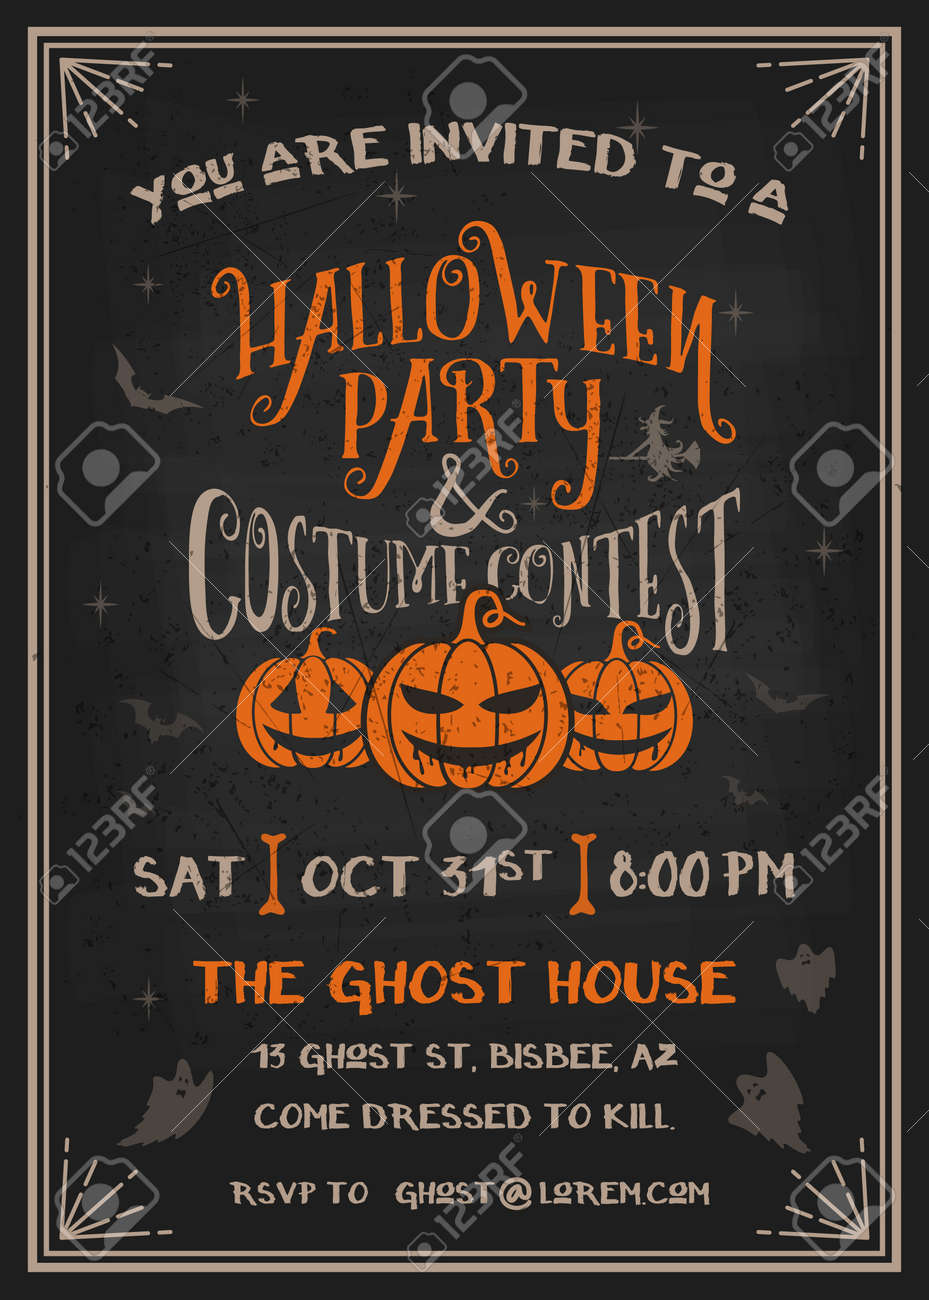 Typography Halloween Party And Costume Contest Invitation Card ...